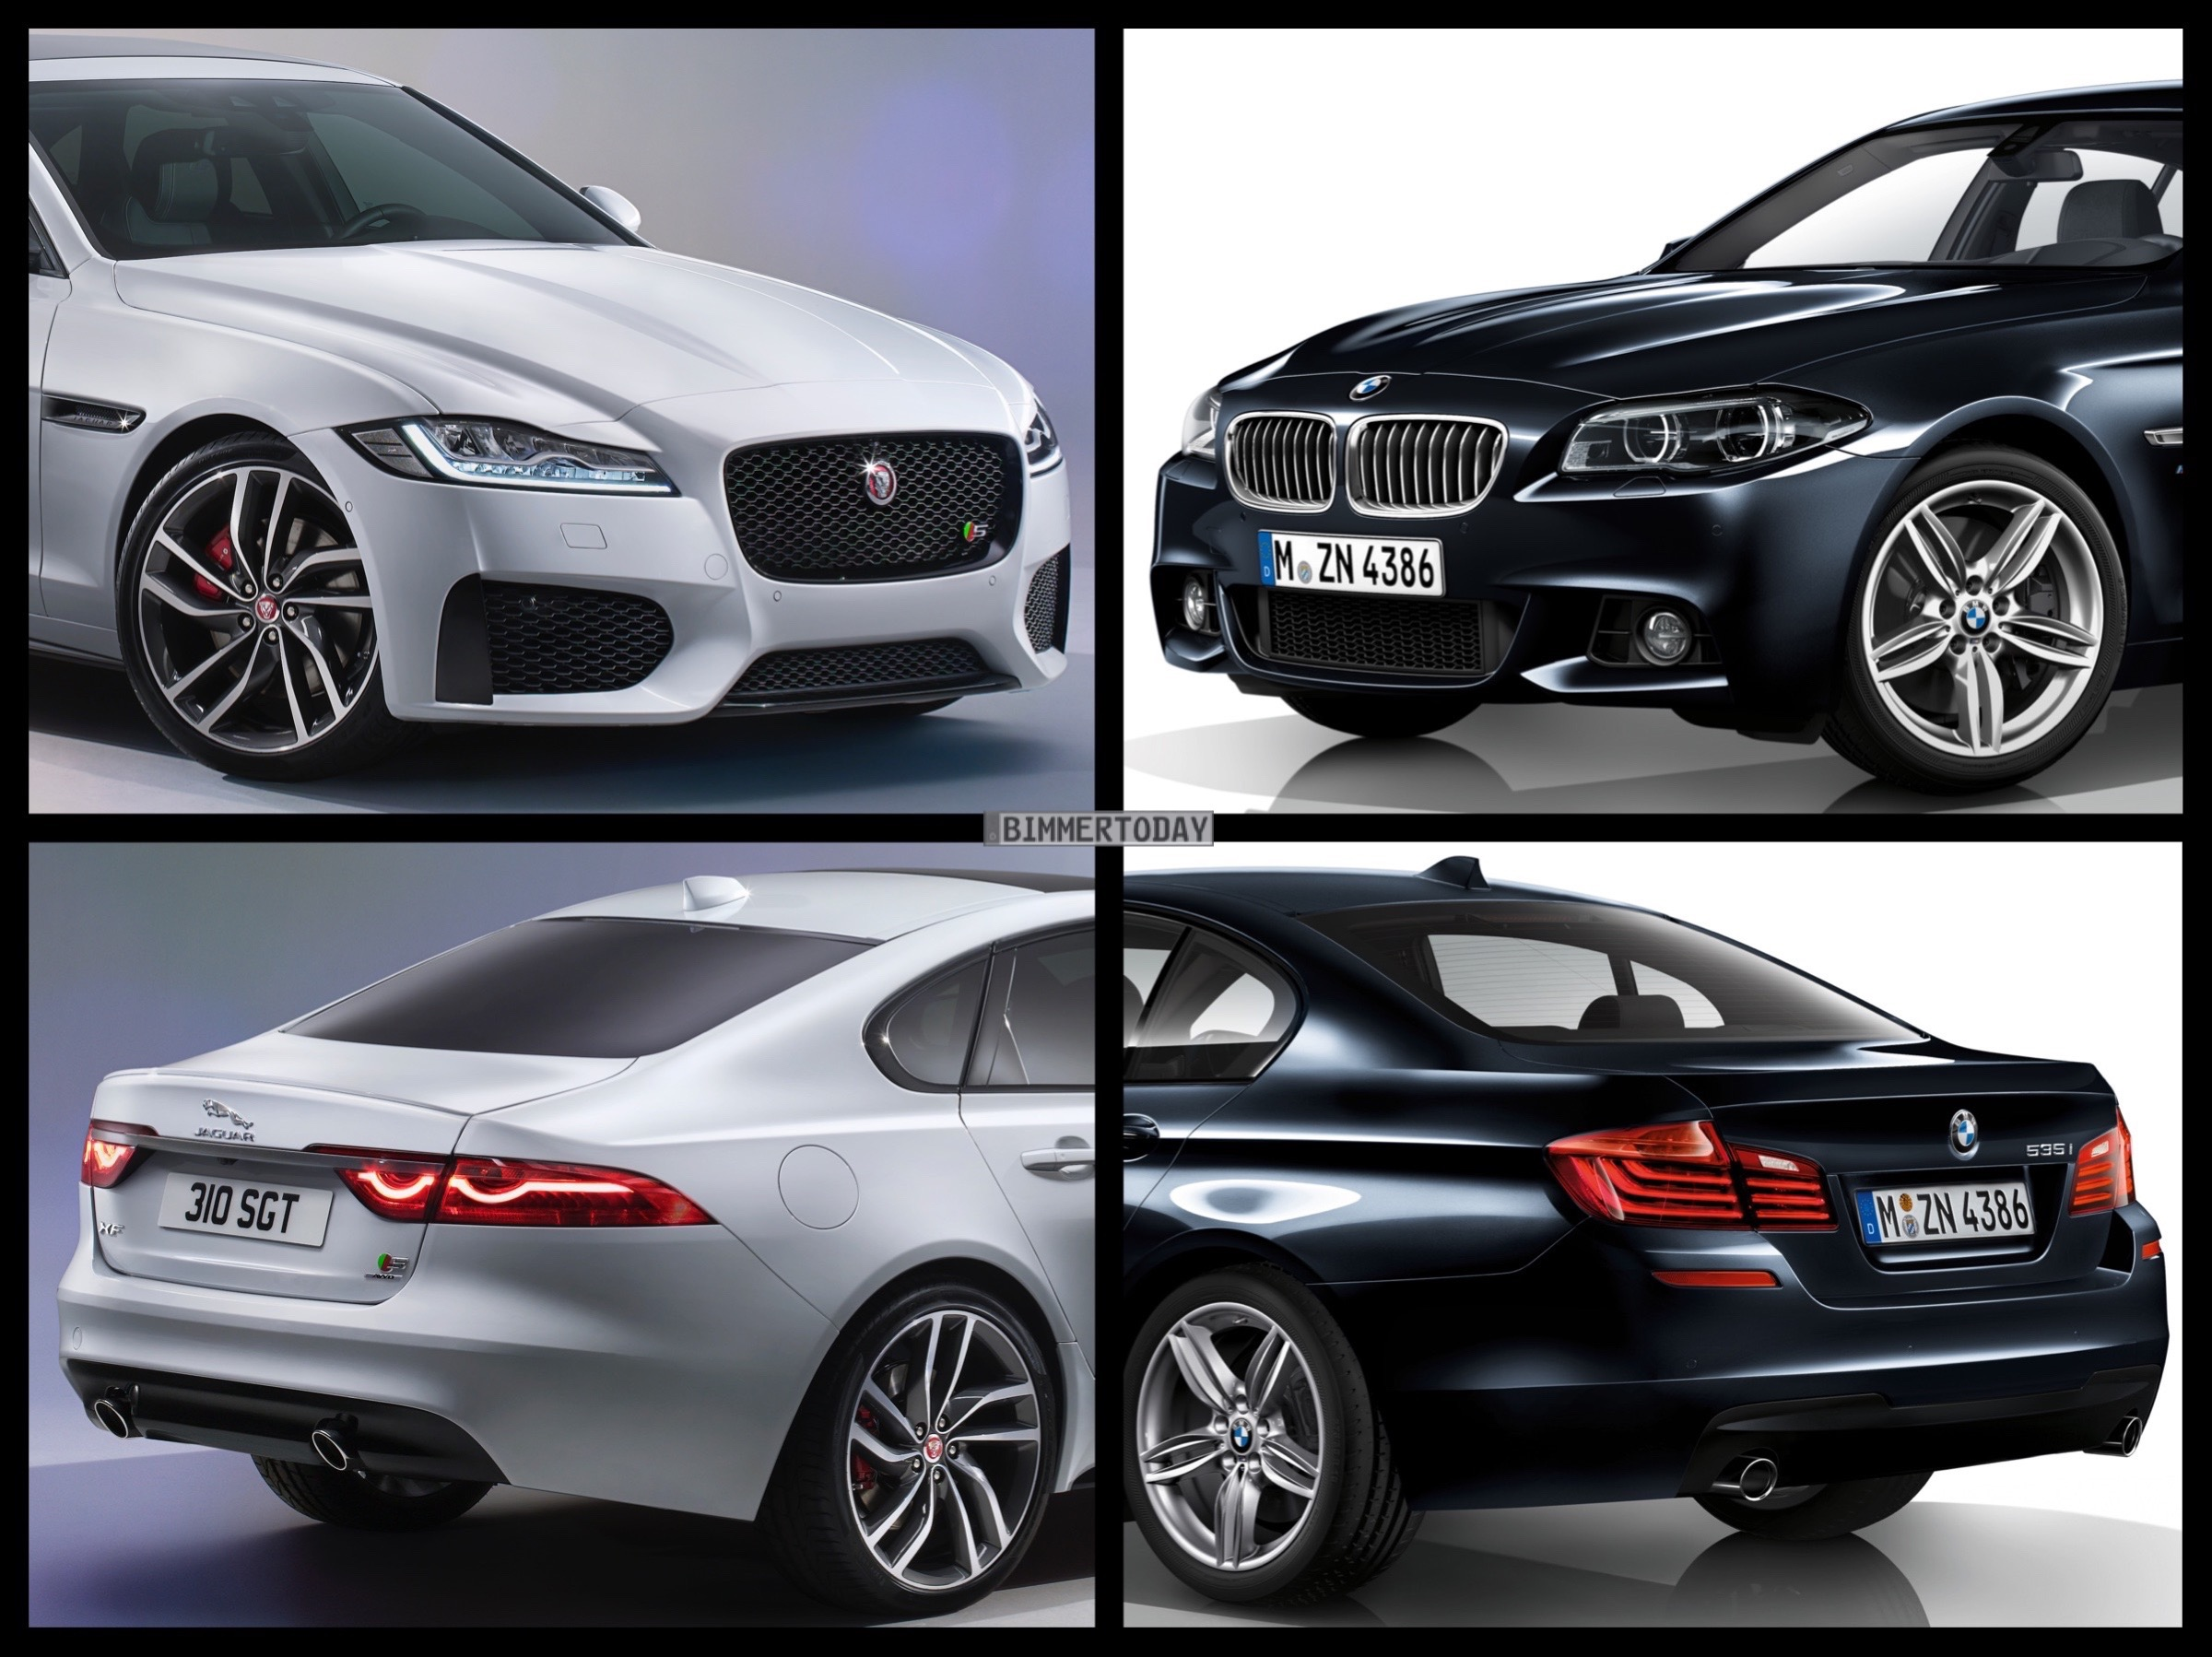 The biggest difference between the x3 and the x5 just might be in their dimensions! Photo Comparison: 2015 Jaguar XF vs. BMW F10 5 Series